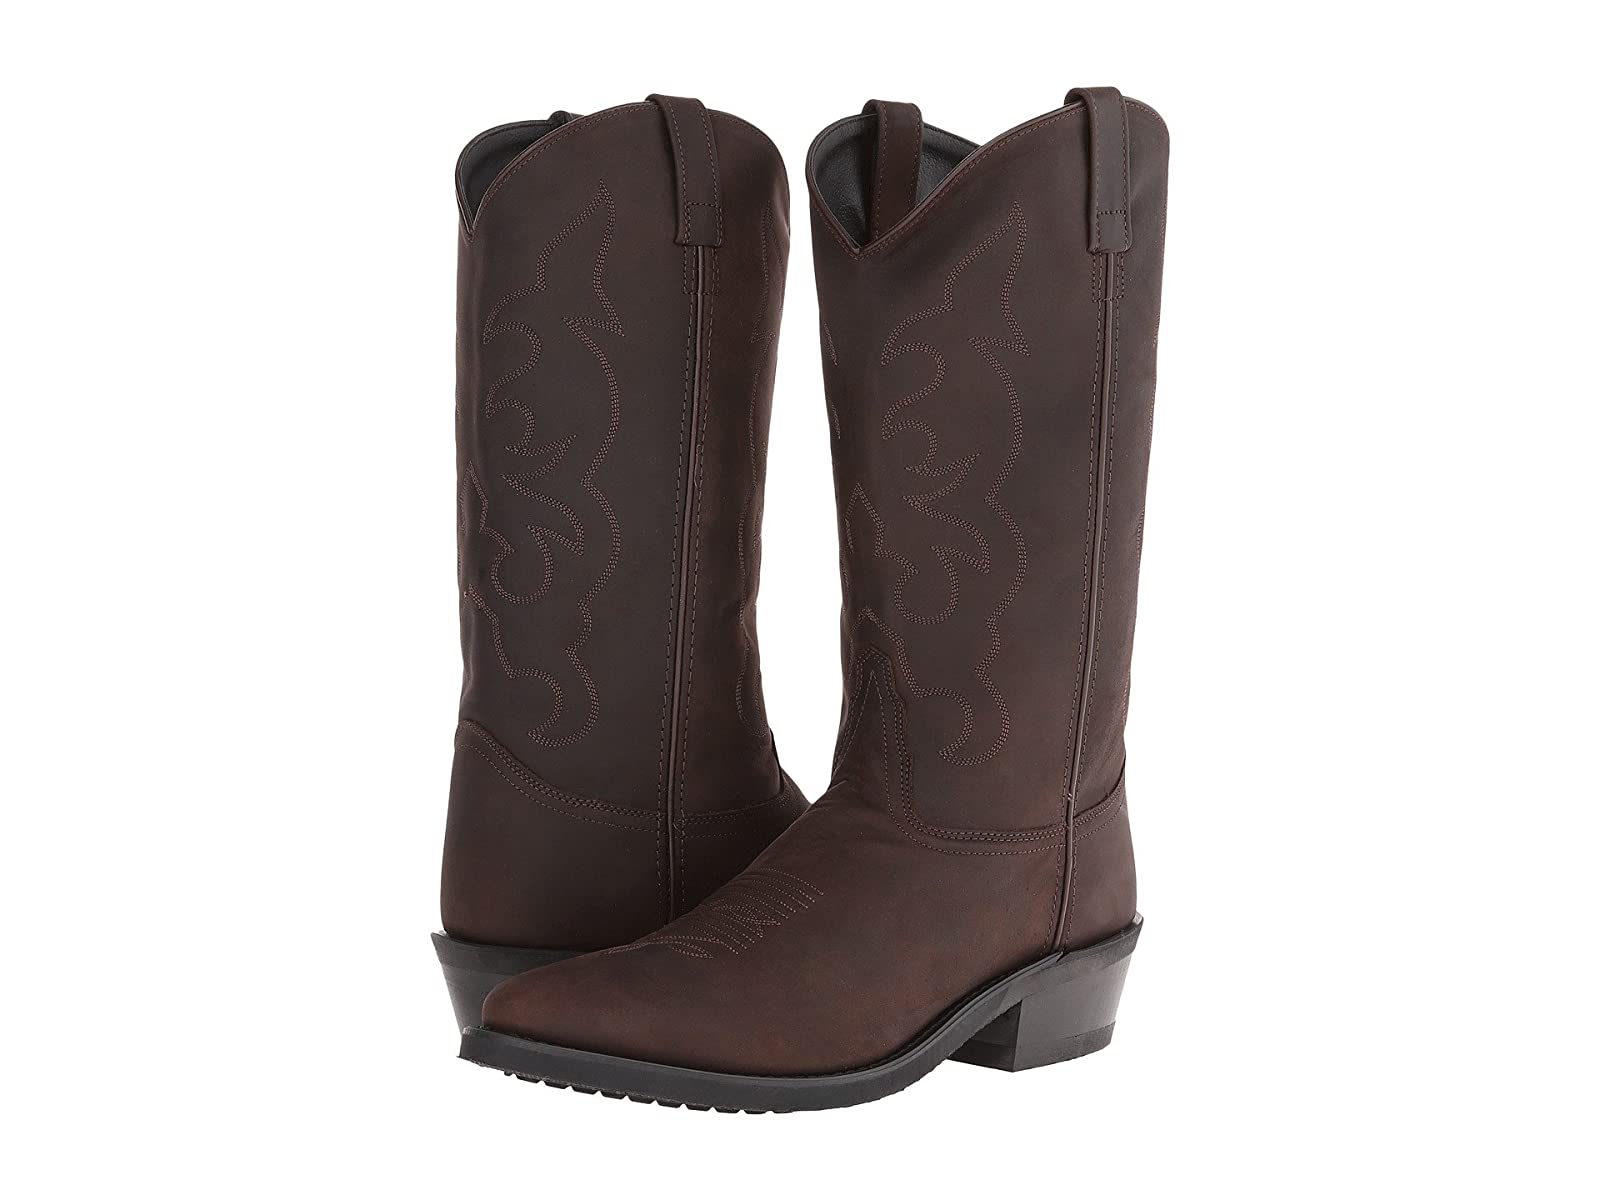 Old West Boots TBM3051Economical and quality shoes